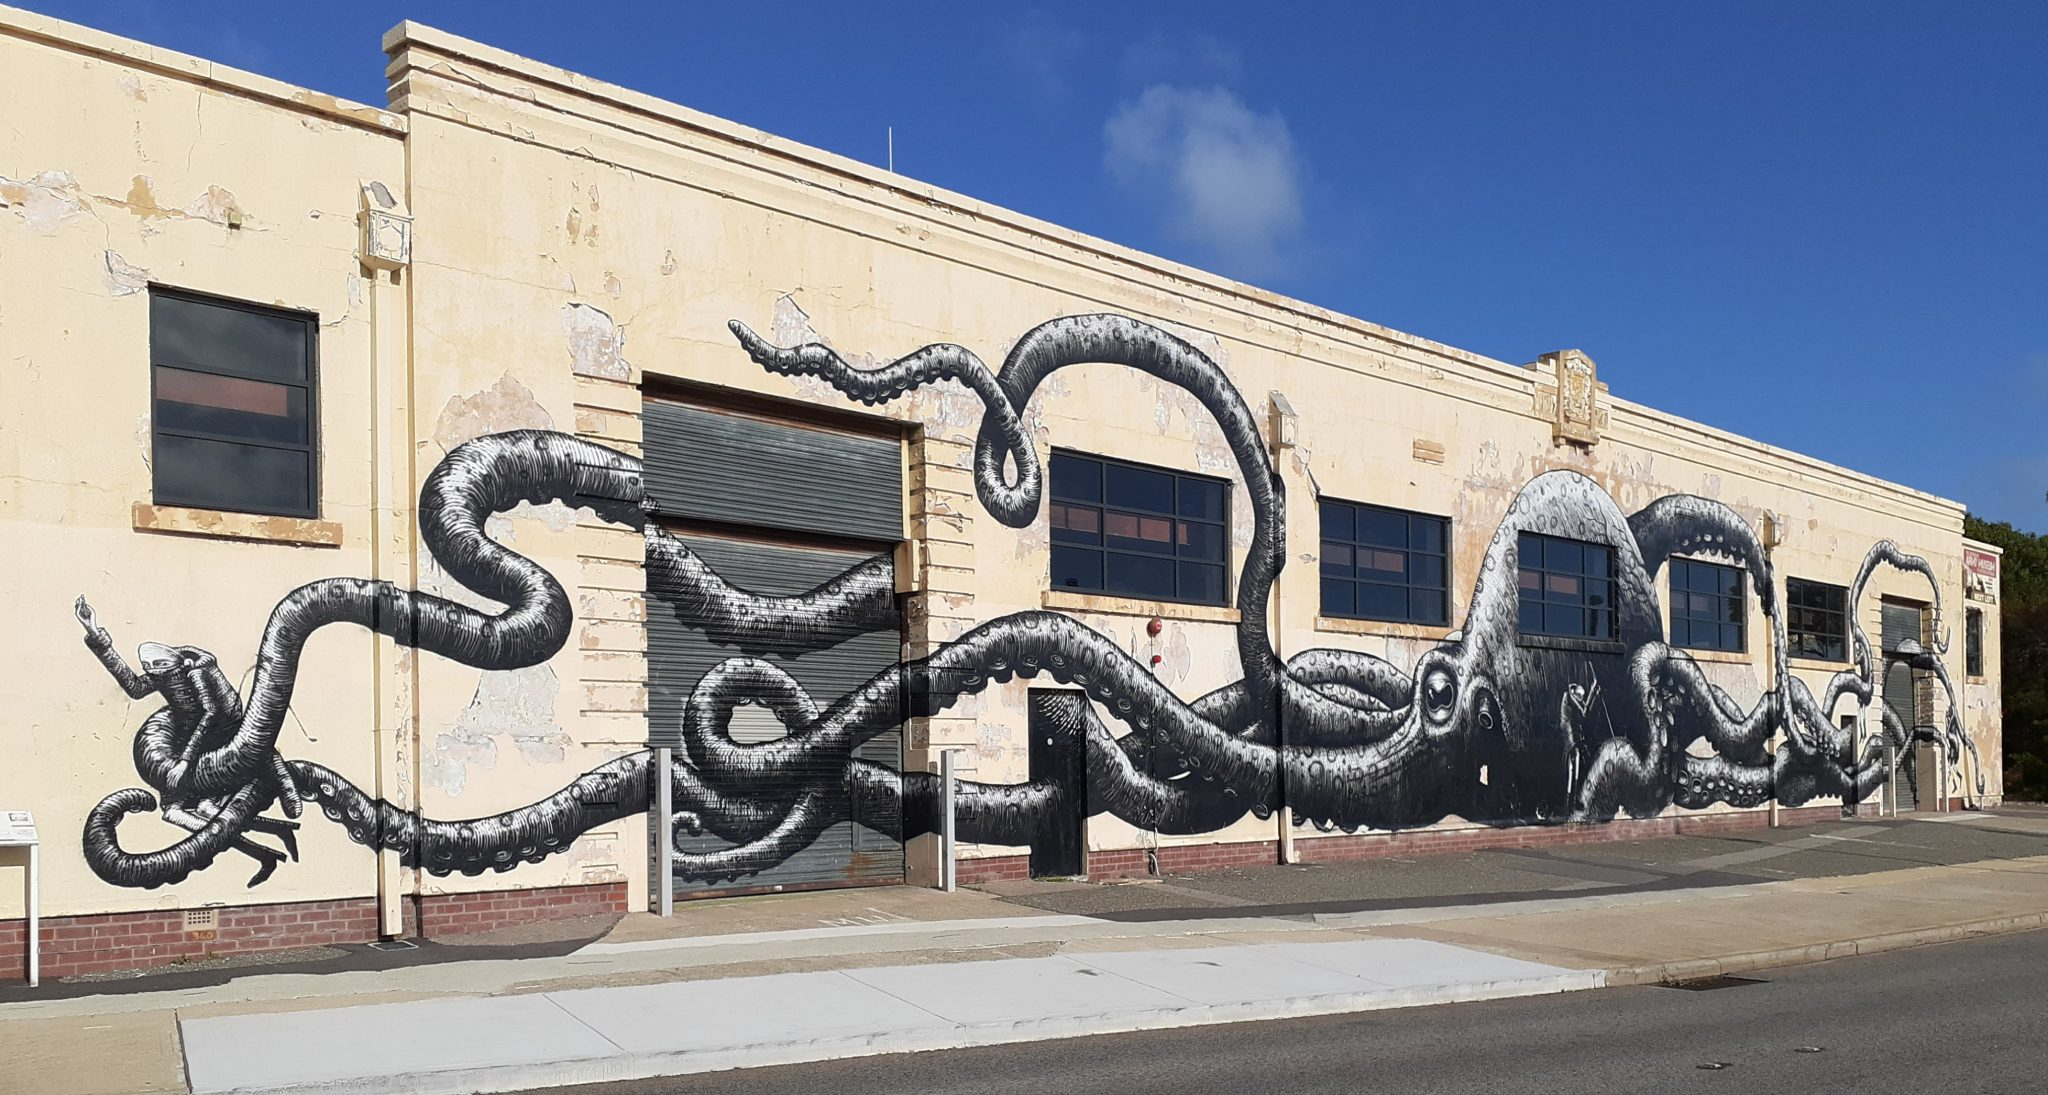 Street Art at the entry to Fremantle